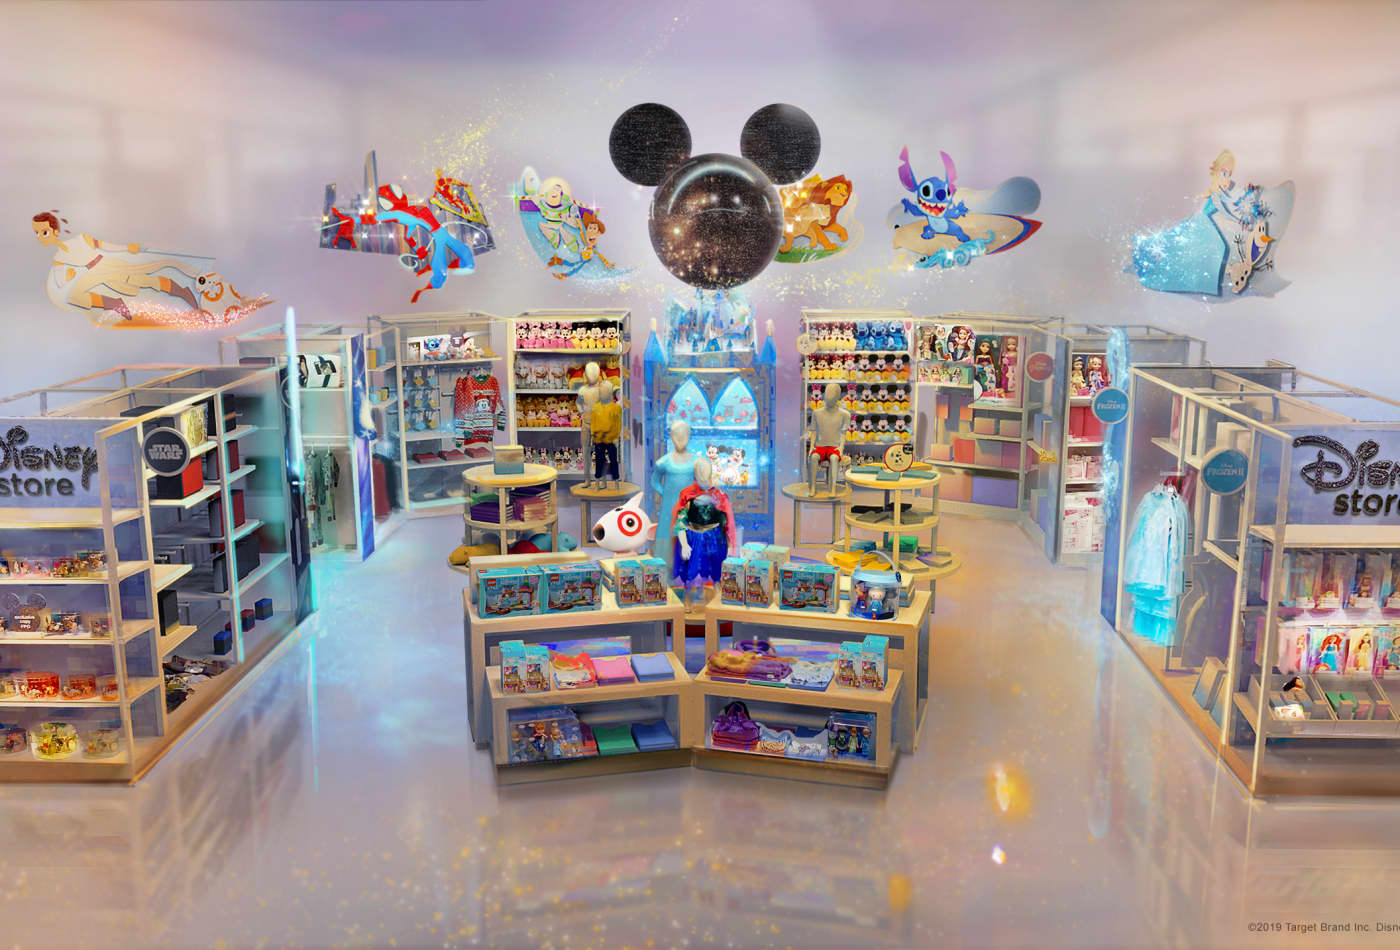 Disney is putting dozens of stores inside Target locations while Target set to open at Walt Disney World Resort